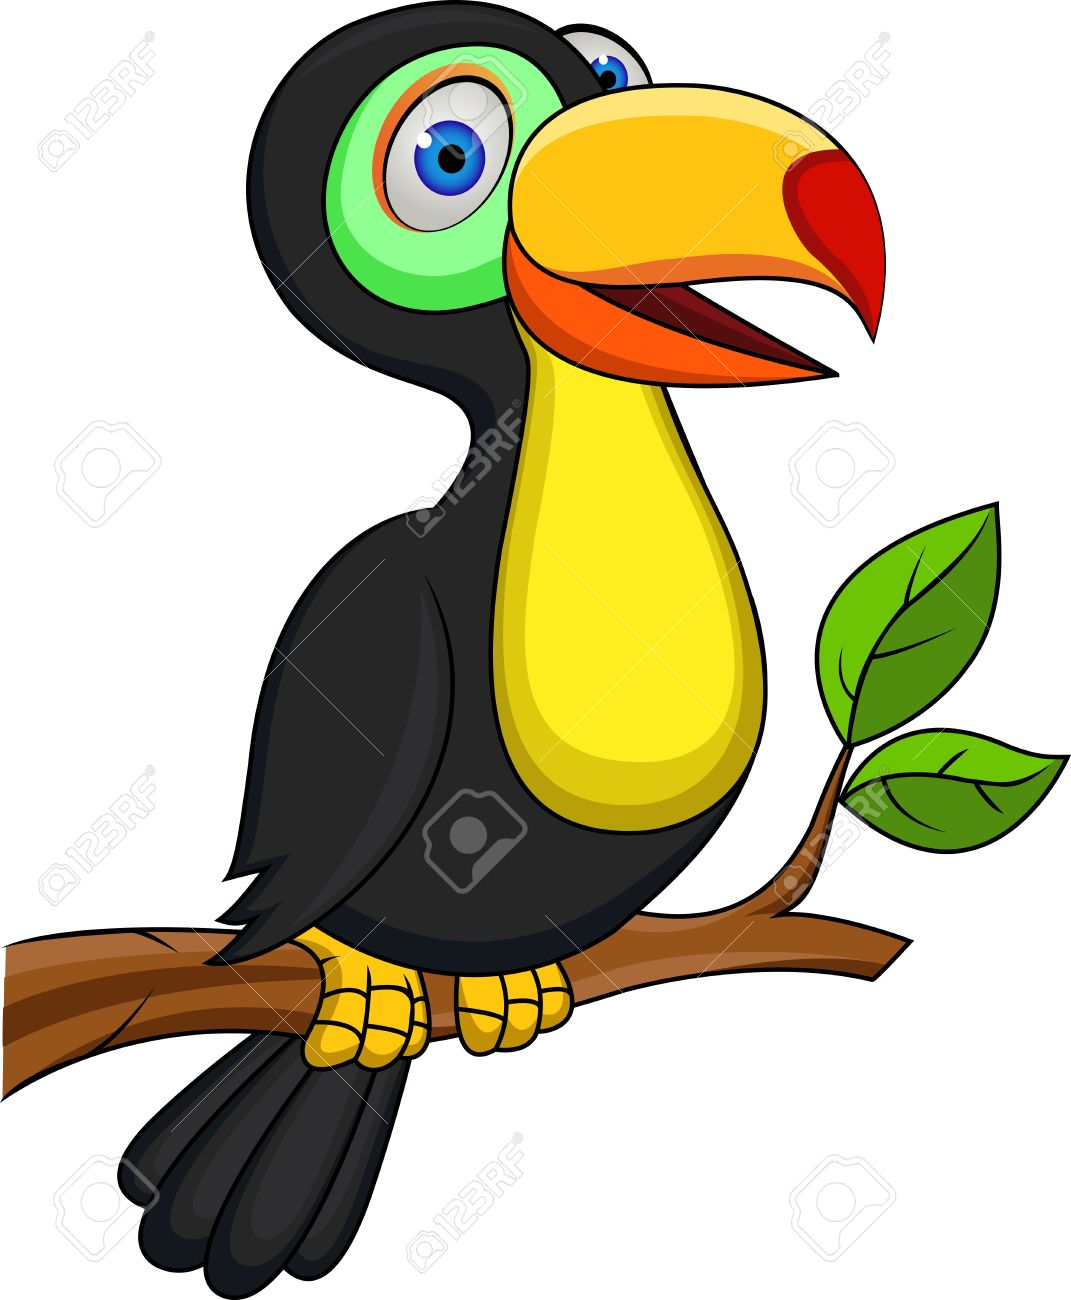 Toucan clipart #10, Download drawings